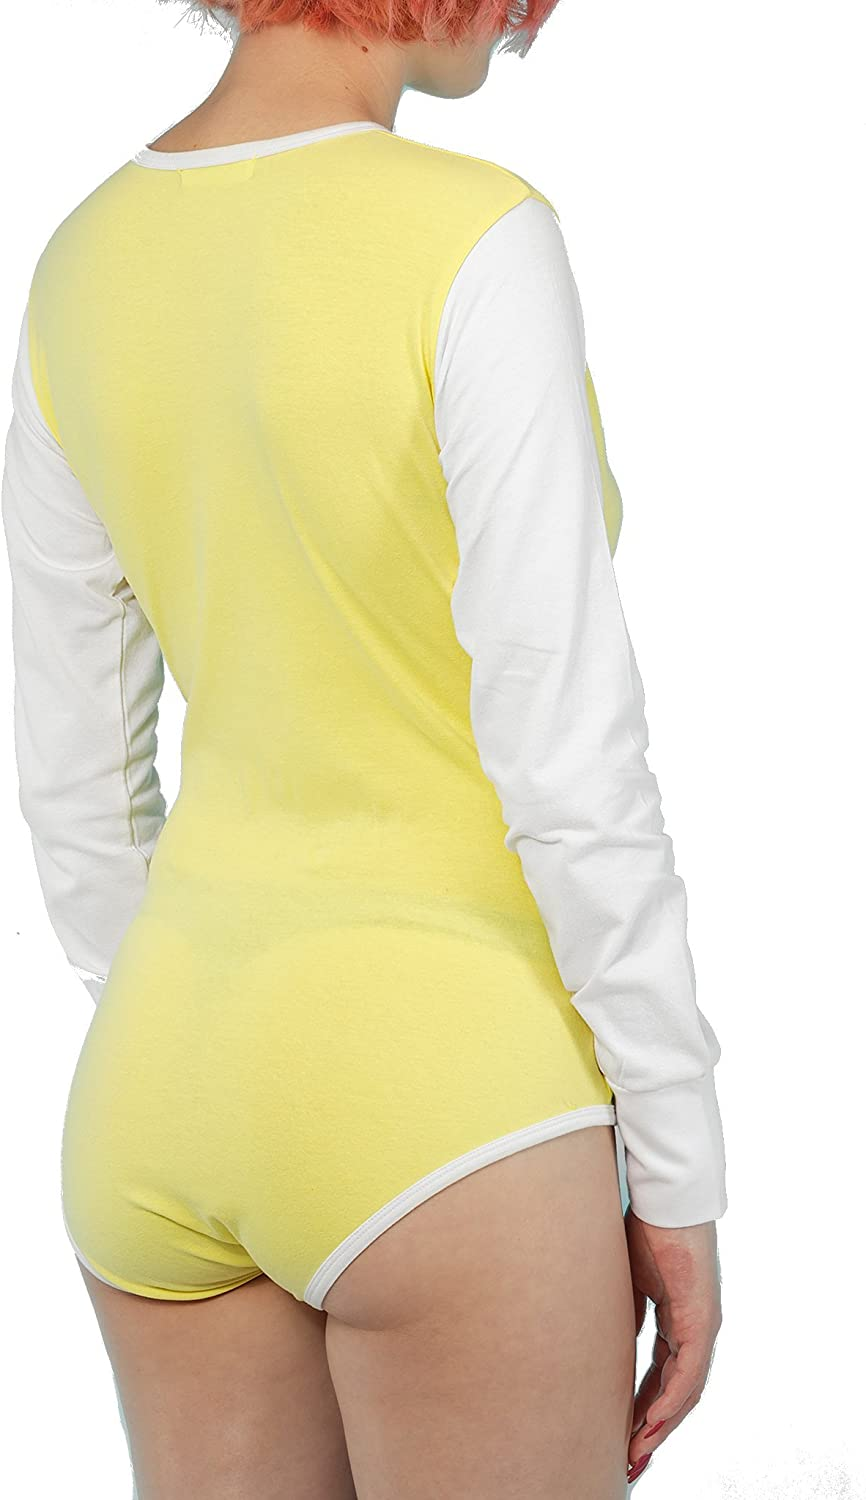 White Littletude ABDL Long Sleeve Onesies Adult Baby Snap Crotch Romper Style Yellow Pink